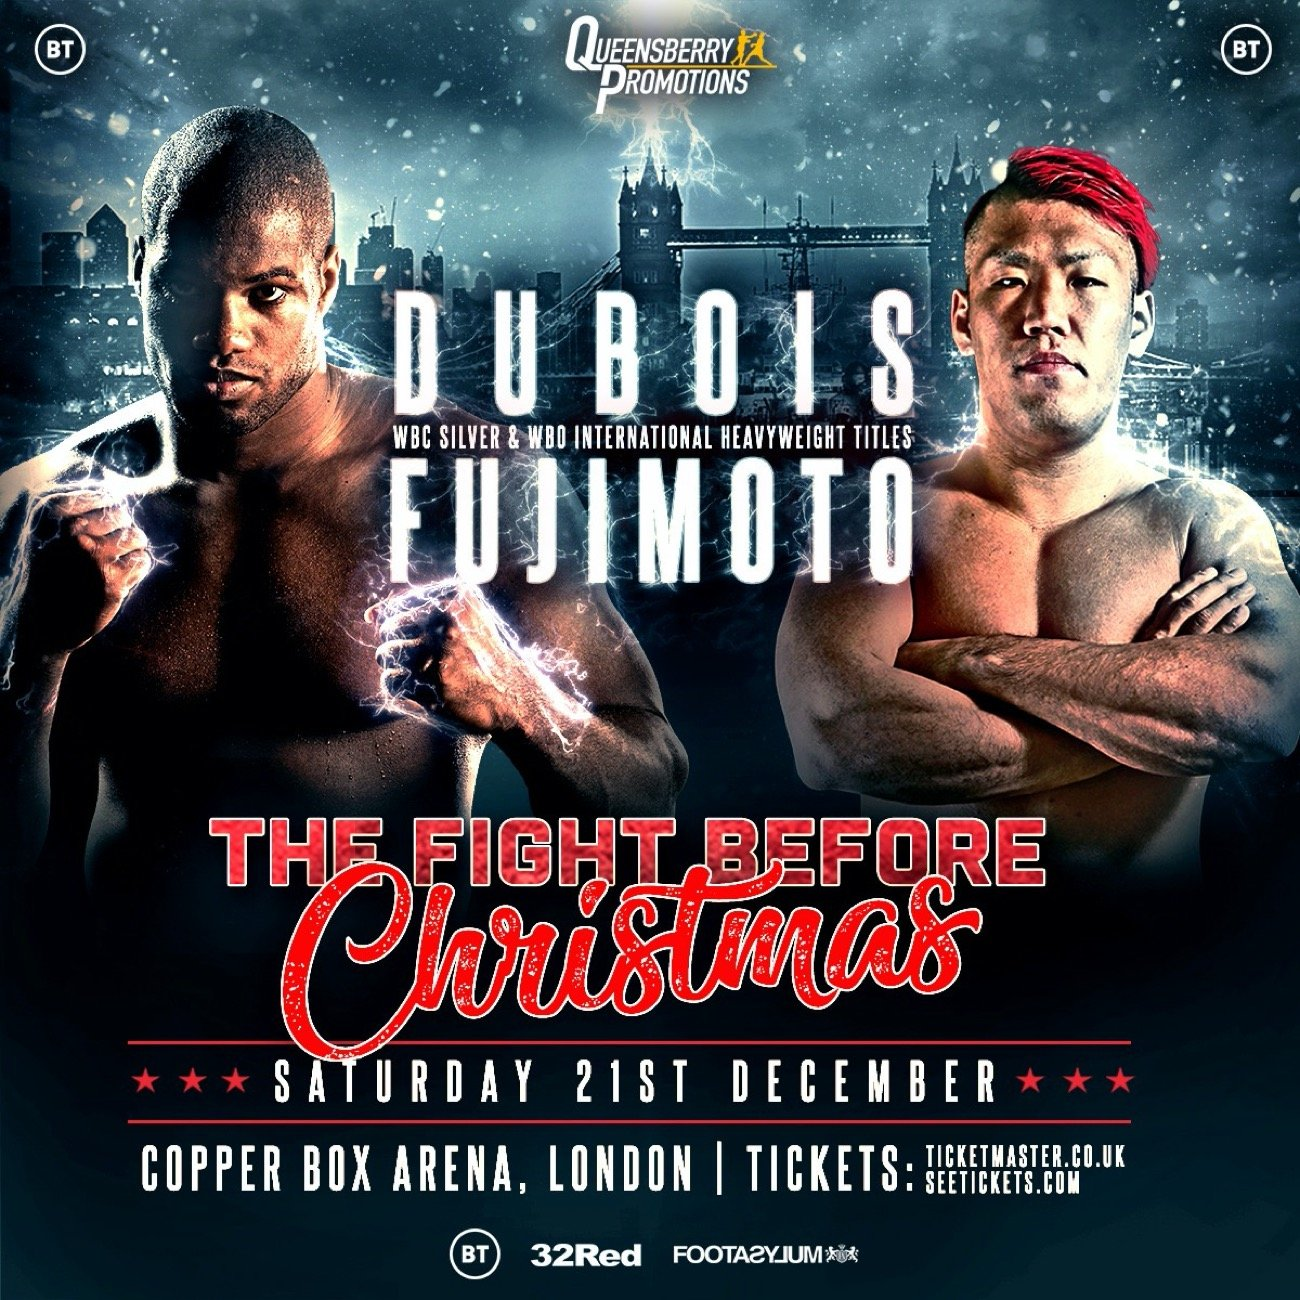 Daniel Dubois, Kyotaro Fujimoto - DANIEL 'DYNAMITE' DUBOIS (13-0, 12KOs) takes on a new front on his prolific title hunt when he challenges for the WBC Silver Championship at the Copper Box Arena on December 21 against Japan's Kyotaro Fujimoto (21-1, 13KOs). Dubois' recently won WBO International Title will also be on the line. 'The Fight Before Christmas' will be televised by BT.